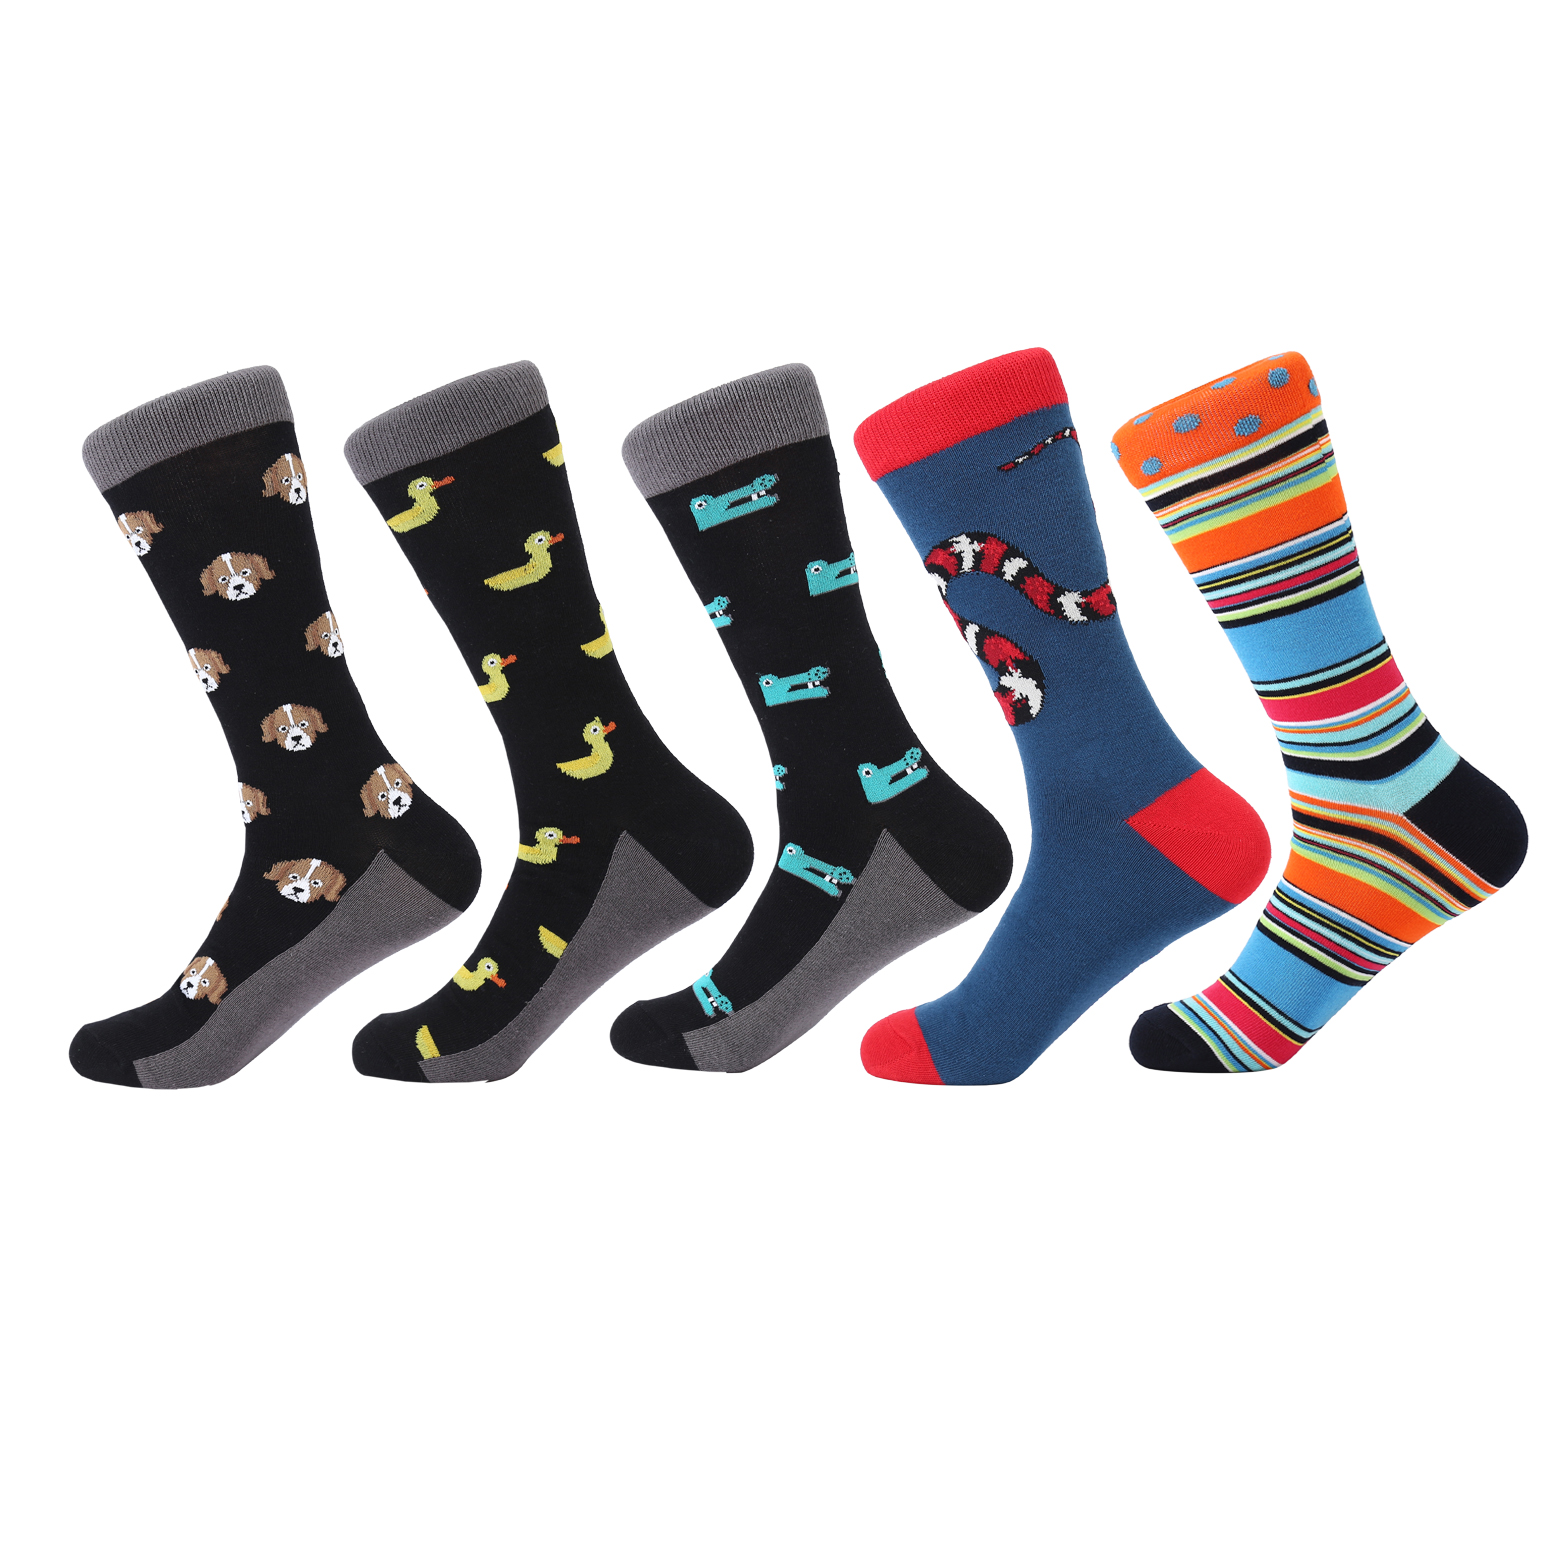 LETSBUY 5 pair/lot Mens happy for funny Socks combed cotton long sock animal style colorful bright men business socks gift sock